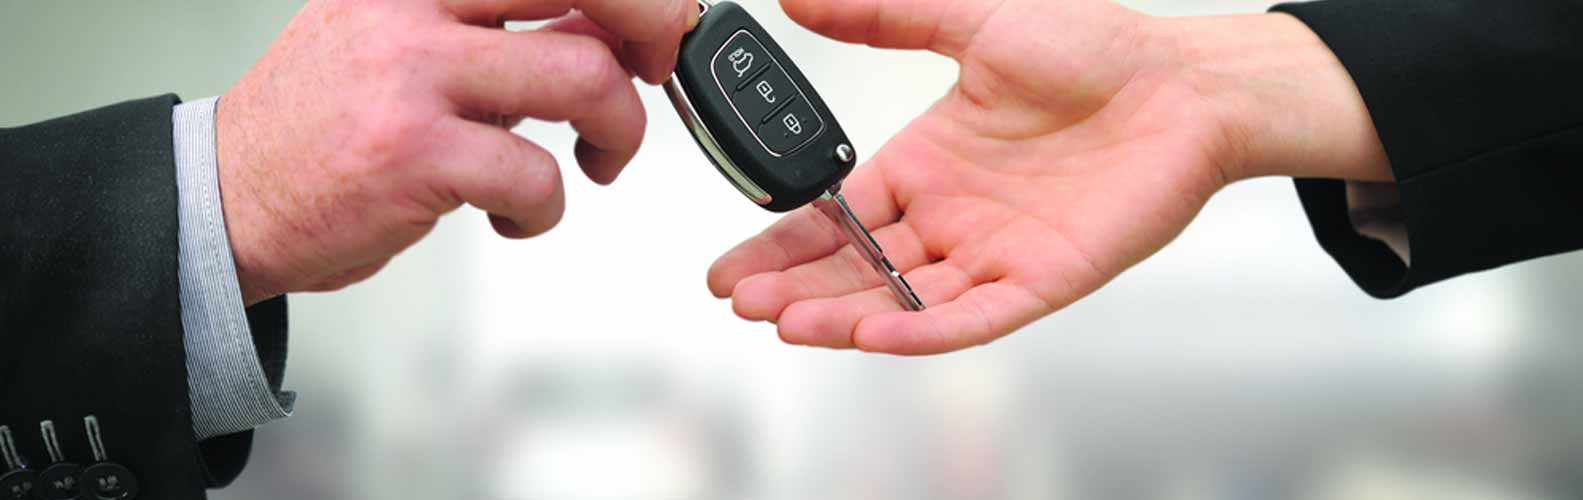 Seal Beach automotive locksmith